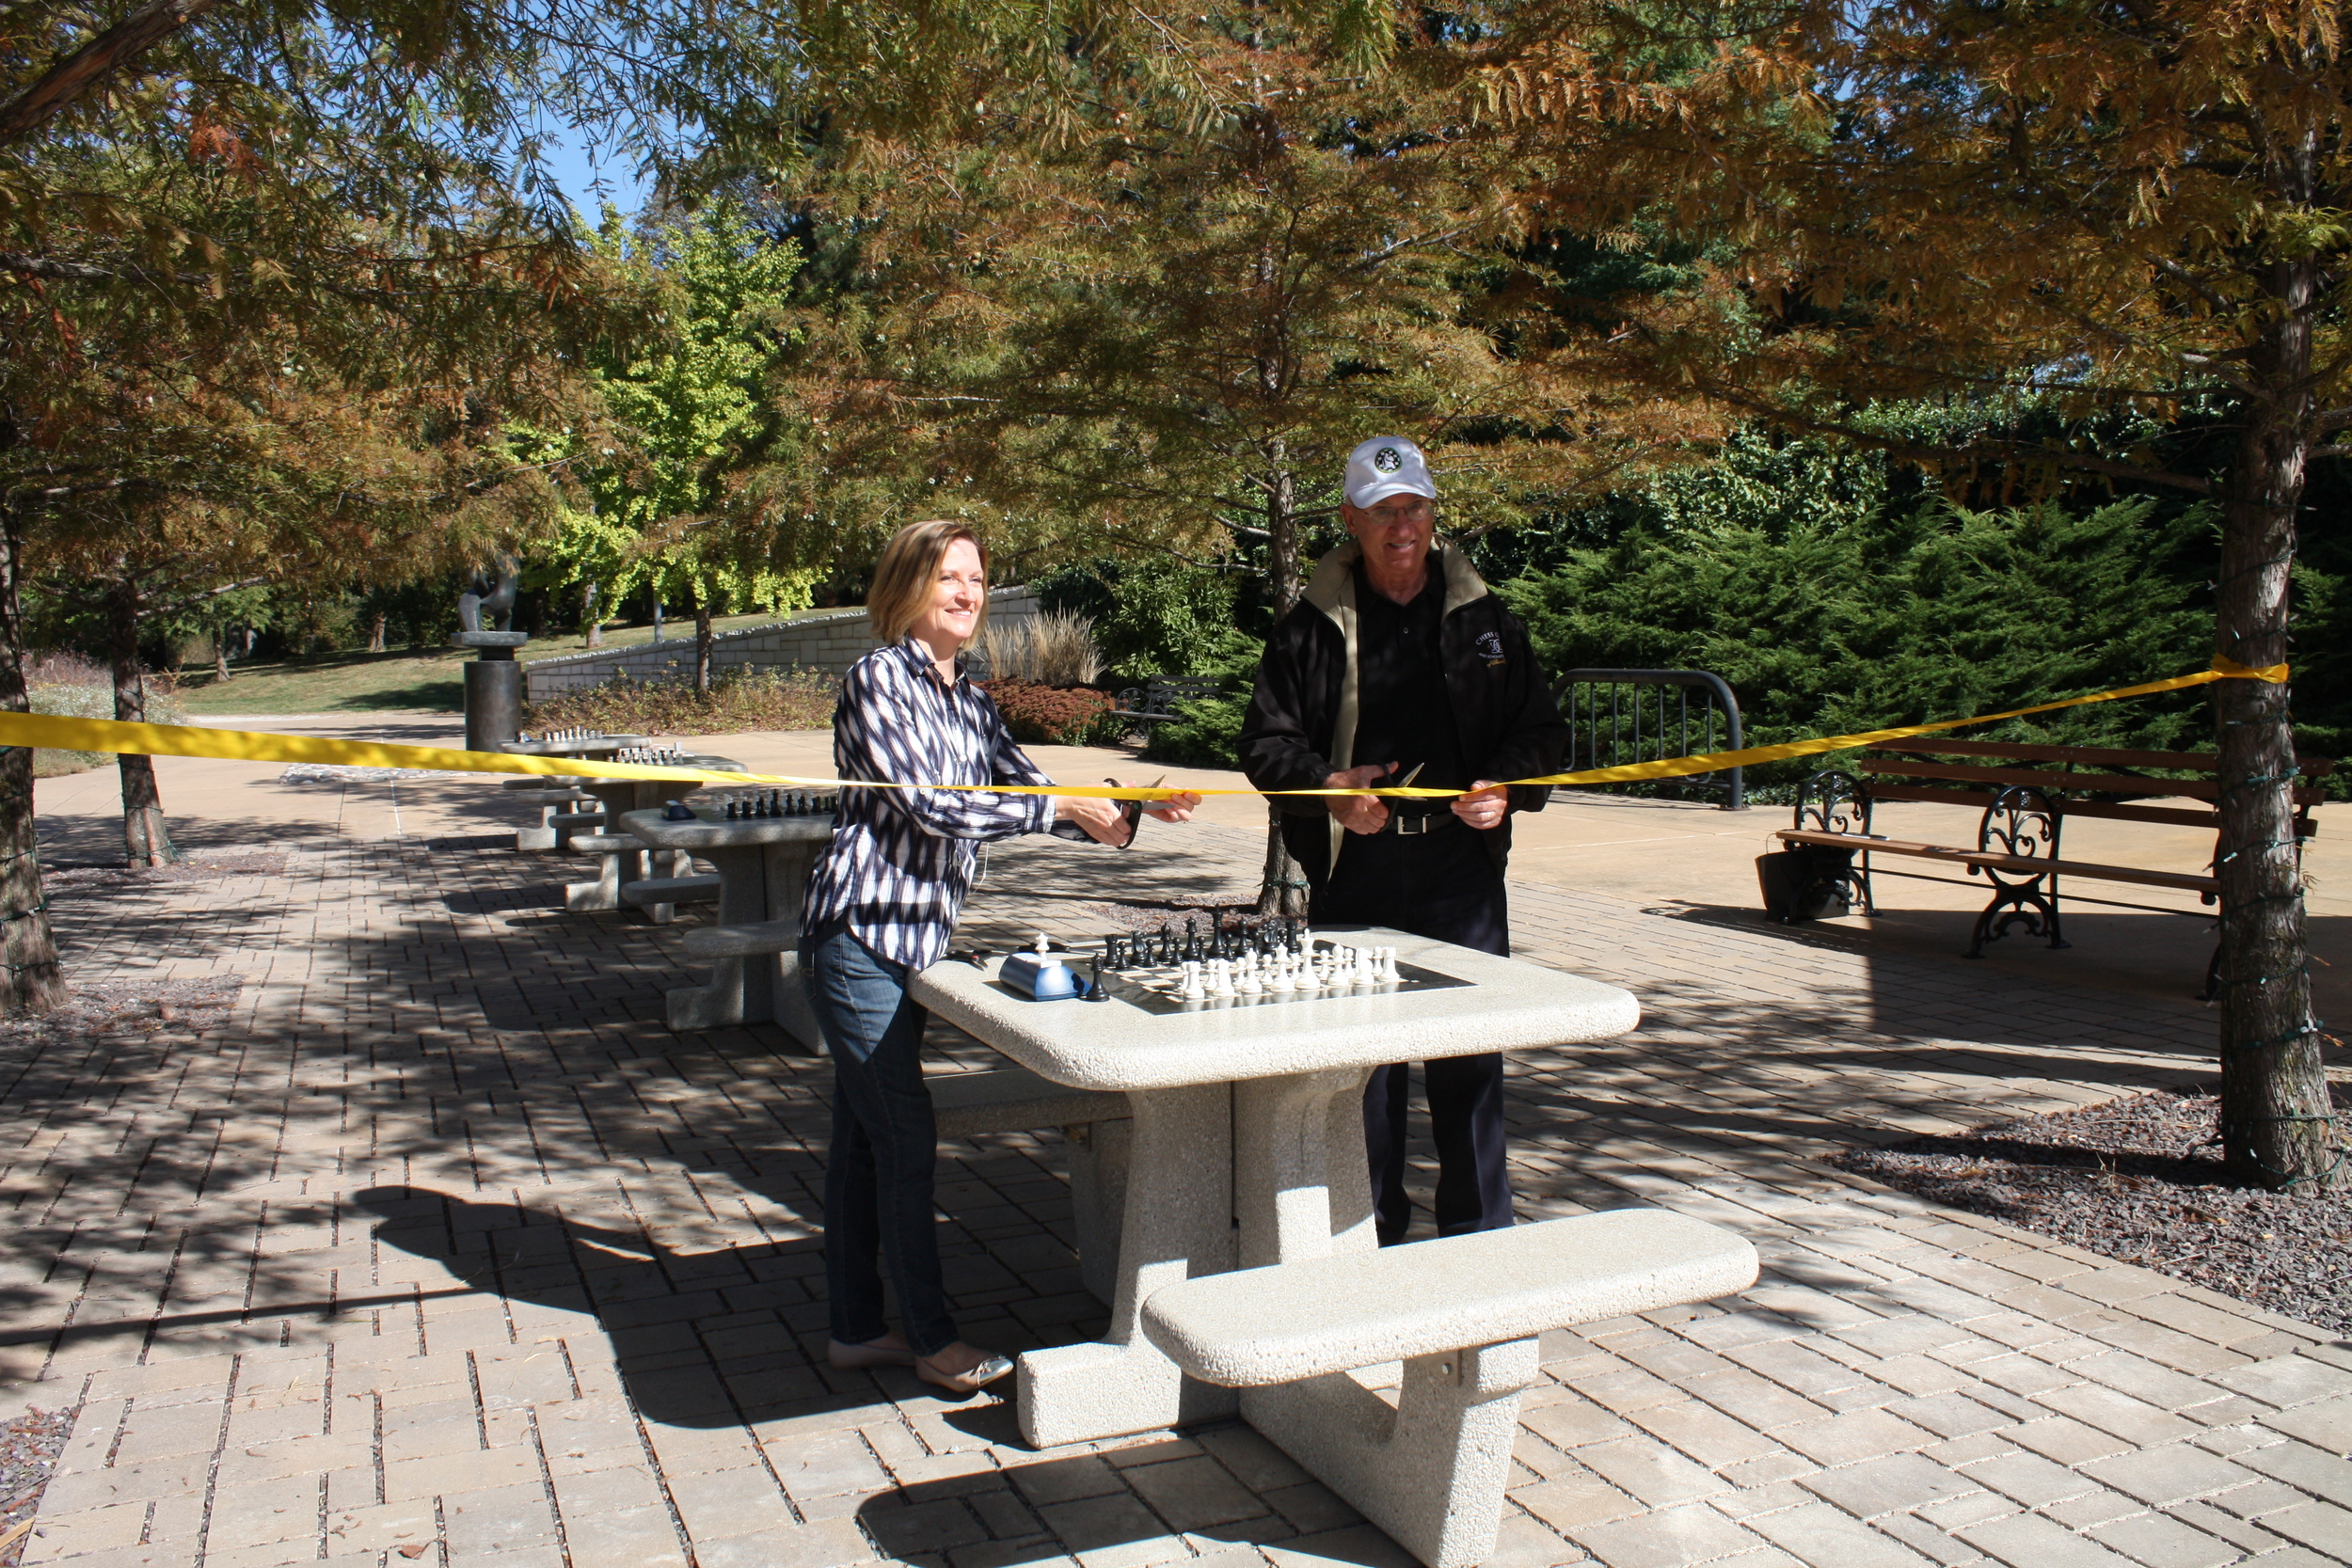 Forest Park Forever President and Executive Director Lesley S. Hoffarth, P.E. cuts the ribbon on Forest Park's new chess plaza with Rex Sinquefield, founder of the Chess Club and Scholastic Center of Saint Louis